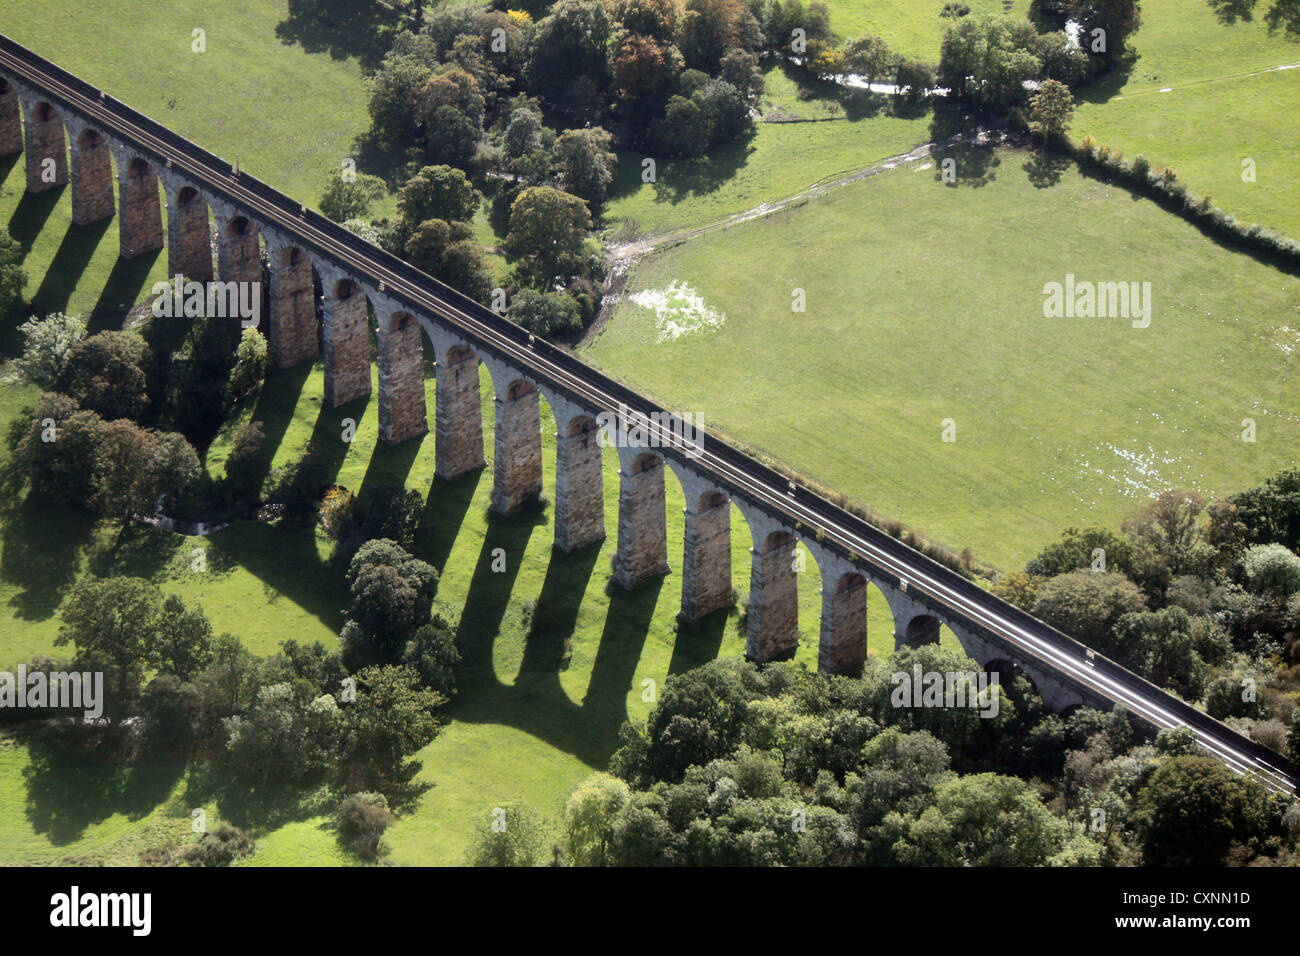 aerial view of a railway viaduct in Lancashire - Stock Image